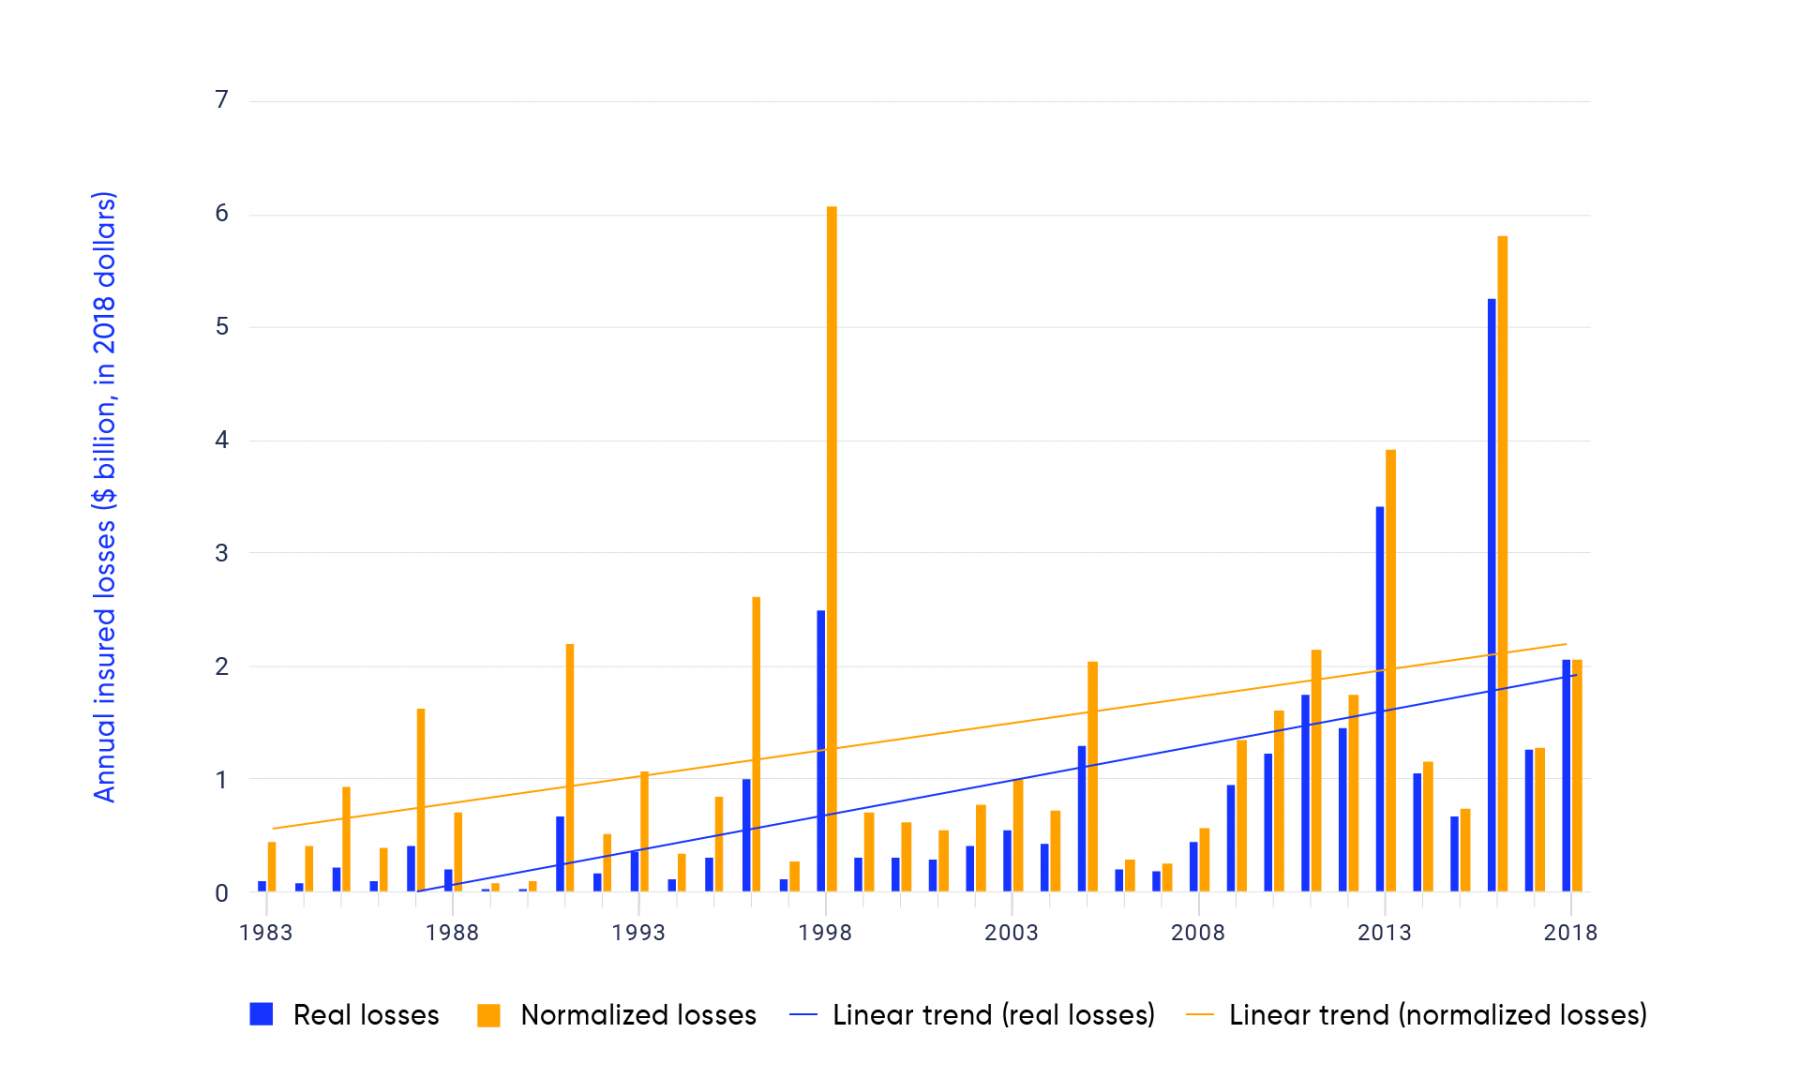 Bar graph shows normalized annual insured losses plus adjustment expenses (in 2018 dollars) from extreme weather events in Canada over the period 1983 to 2018. The height of the bars shows the total normalized losses in orange and real losses in blue, plus expenses from all extreme weather-related events in each year. There are spikes in normalized losses in 1987, 1991, 1996, 2005, 2011, 2012, 2013, 2016, 2017, and 2018. The solid lines show the estimated upward trend in normalized insured losses and real insured losses, plus adjustment expenses. The trend line shows that both normalized and real losses have been trending upwards since the 1980s.